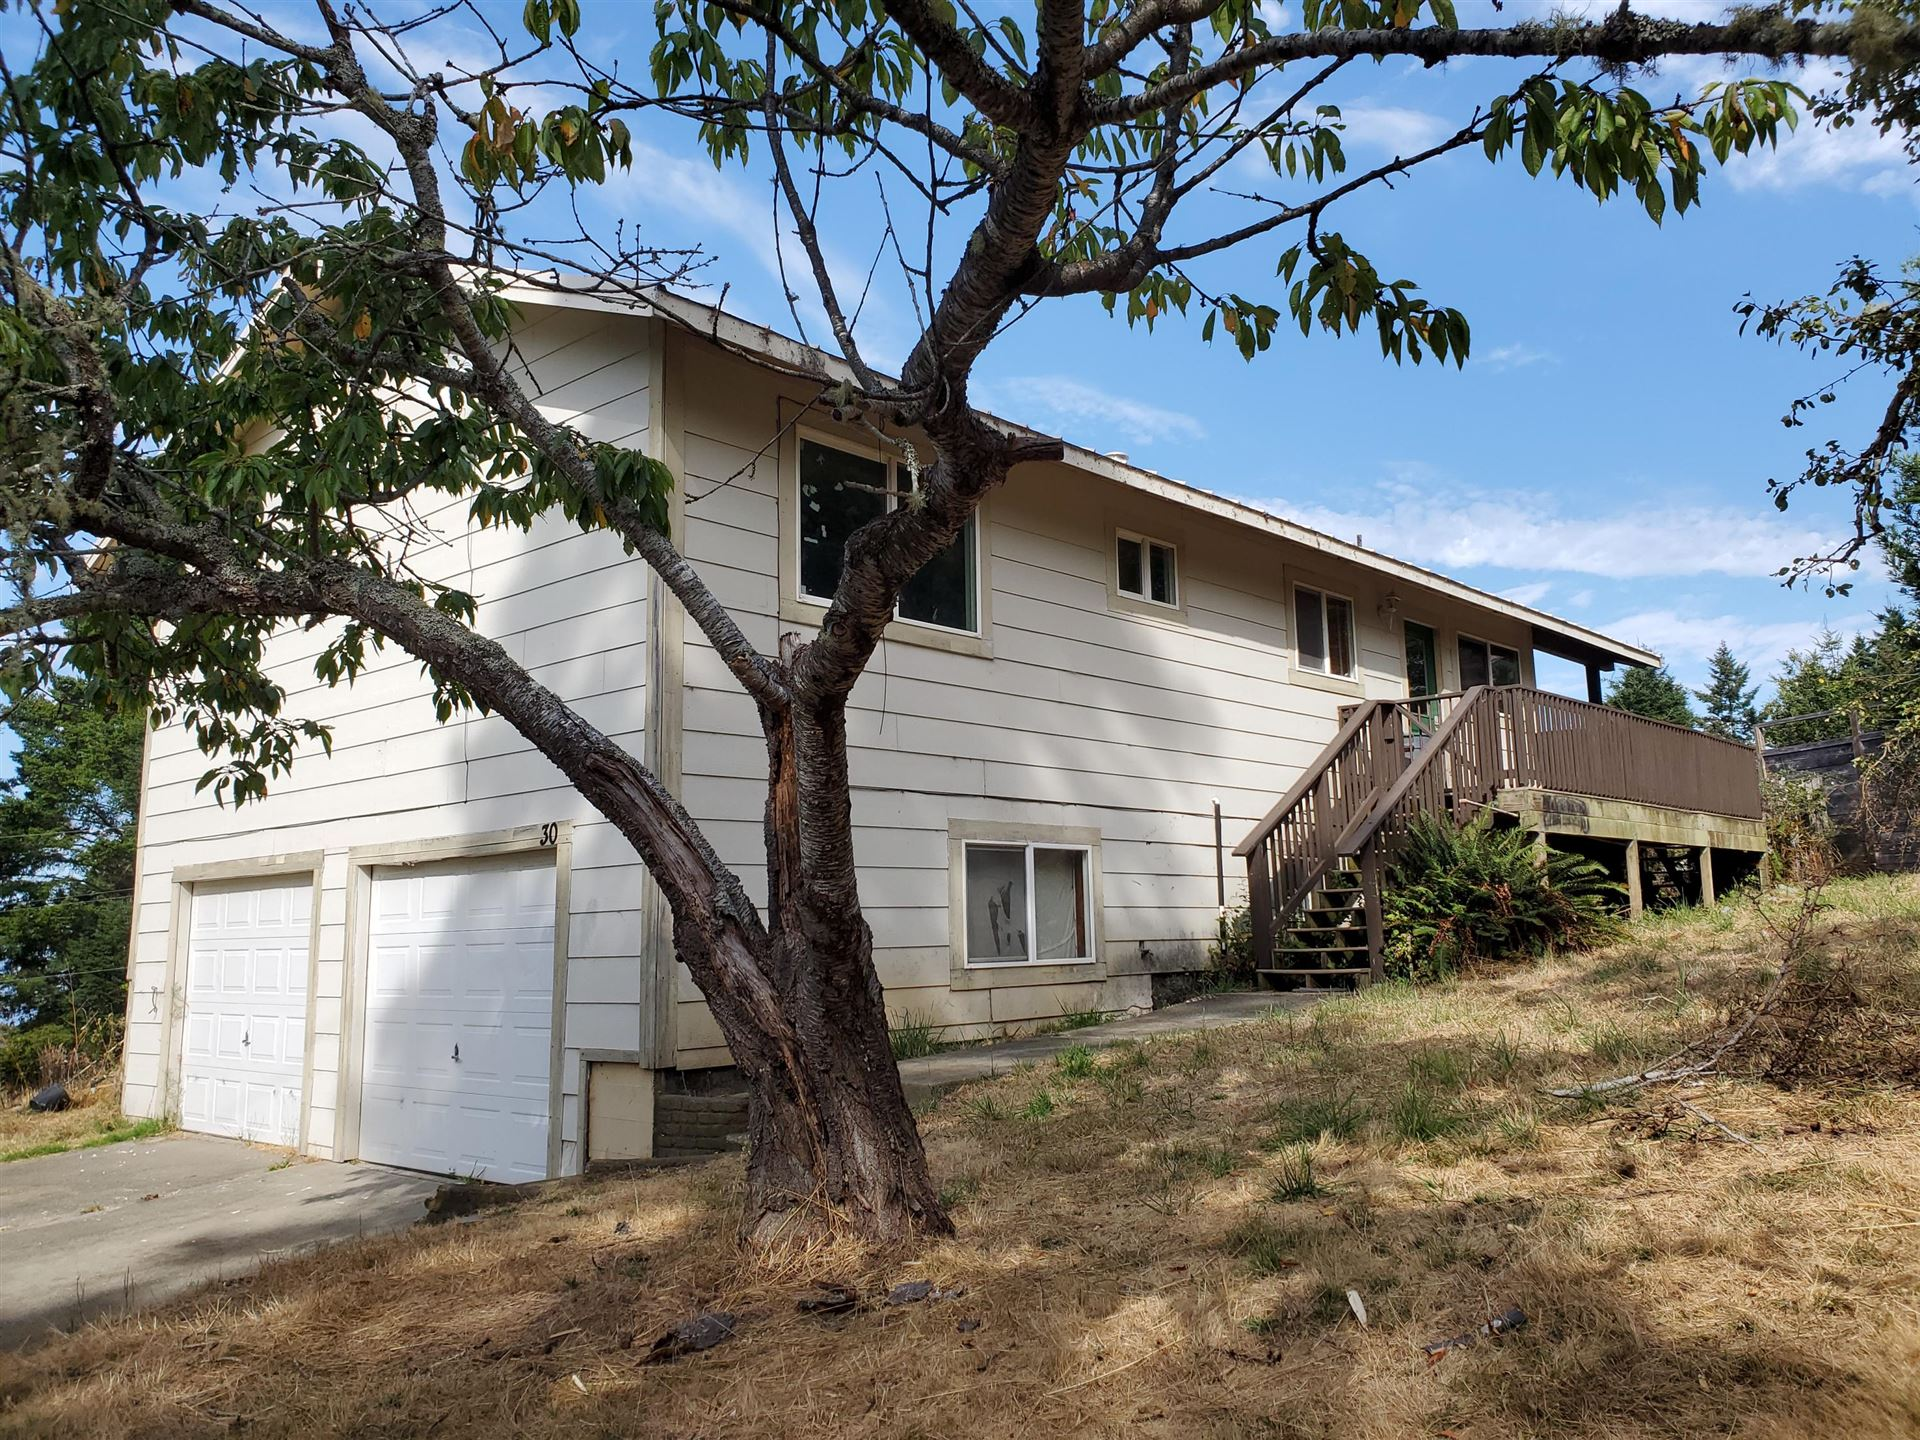 30 Spur Court, Shelter Cove, CA 95589 - MLS#: 257233